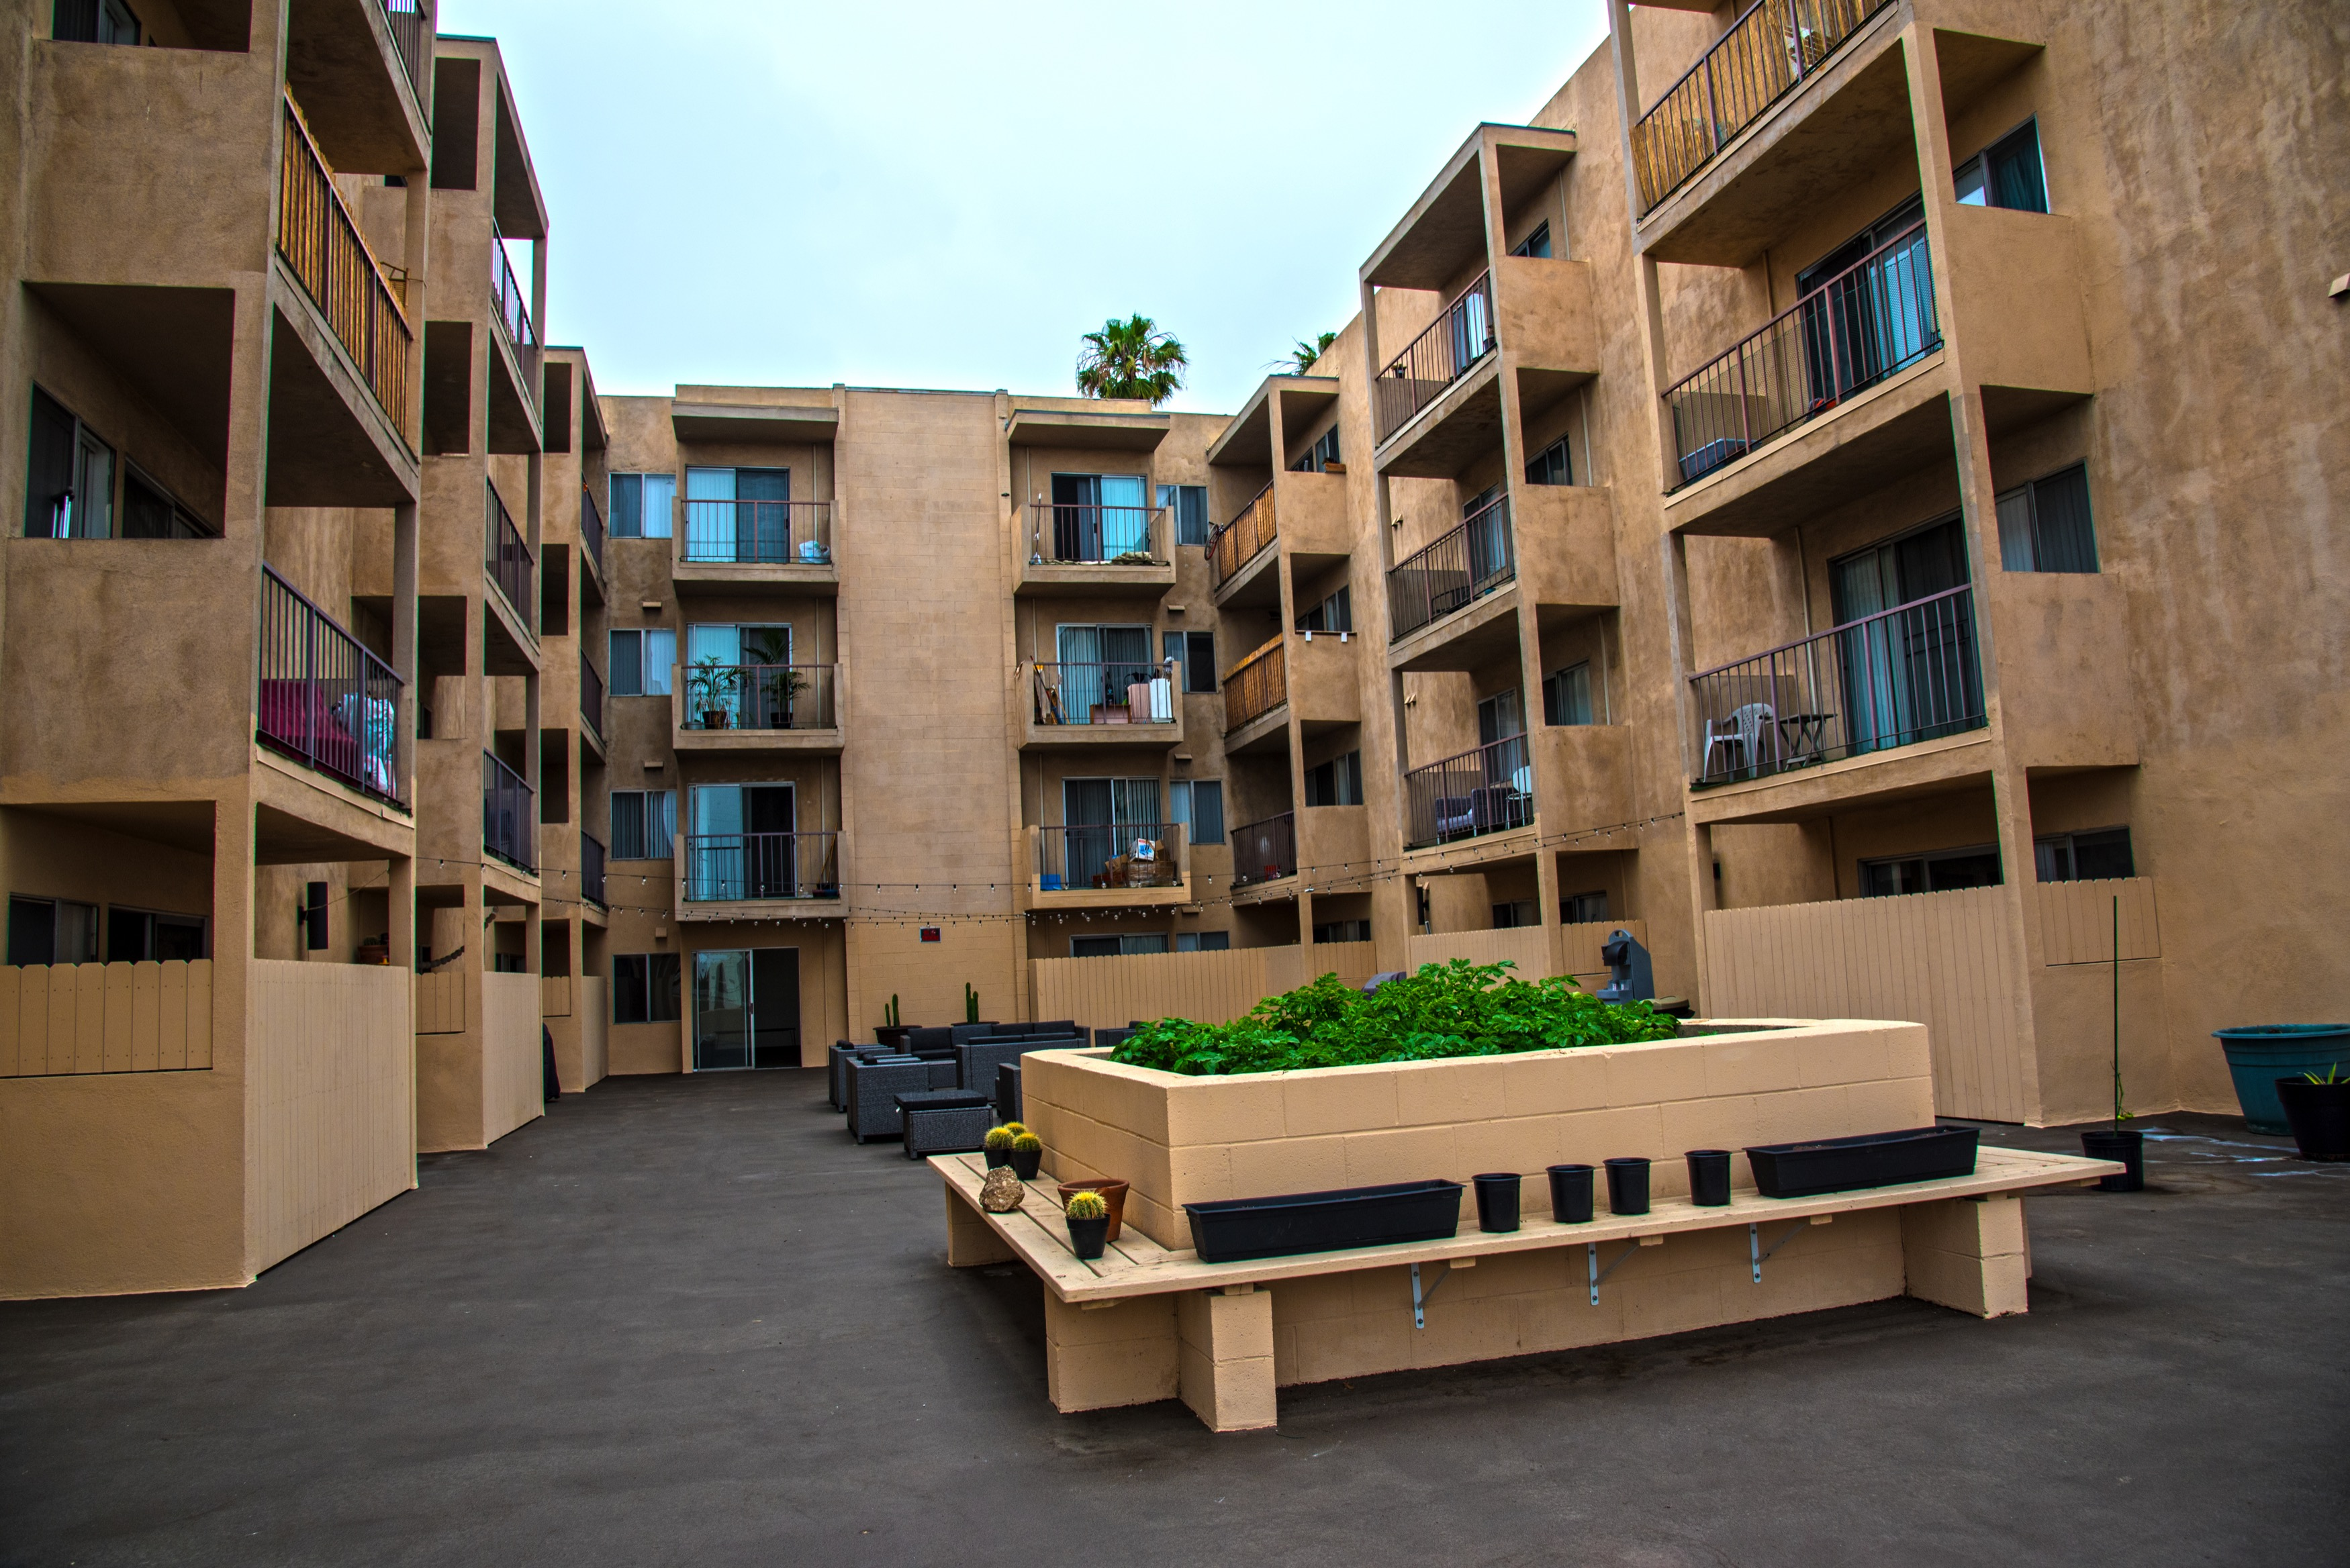 1 Bedroom Apts In Long Beach Ca 28 Images Homes For Rent In Cerritos California Apartments